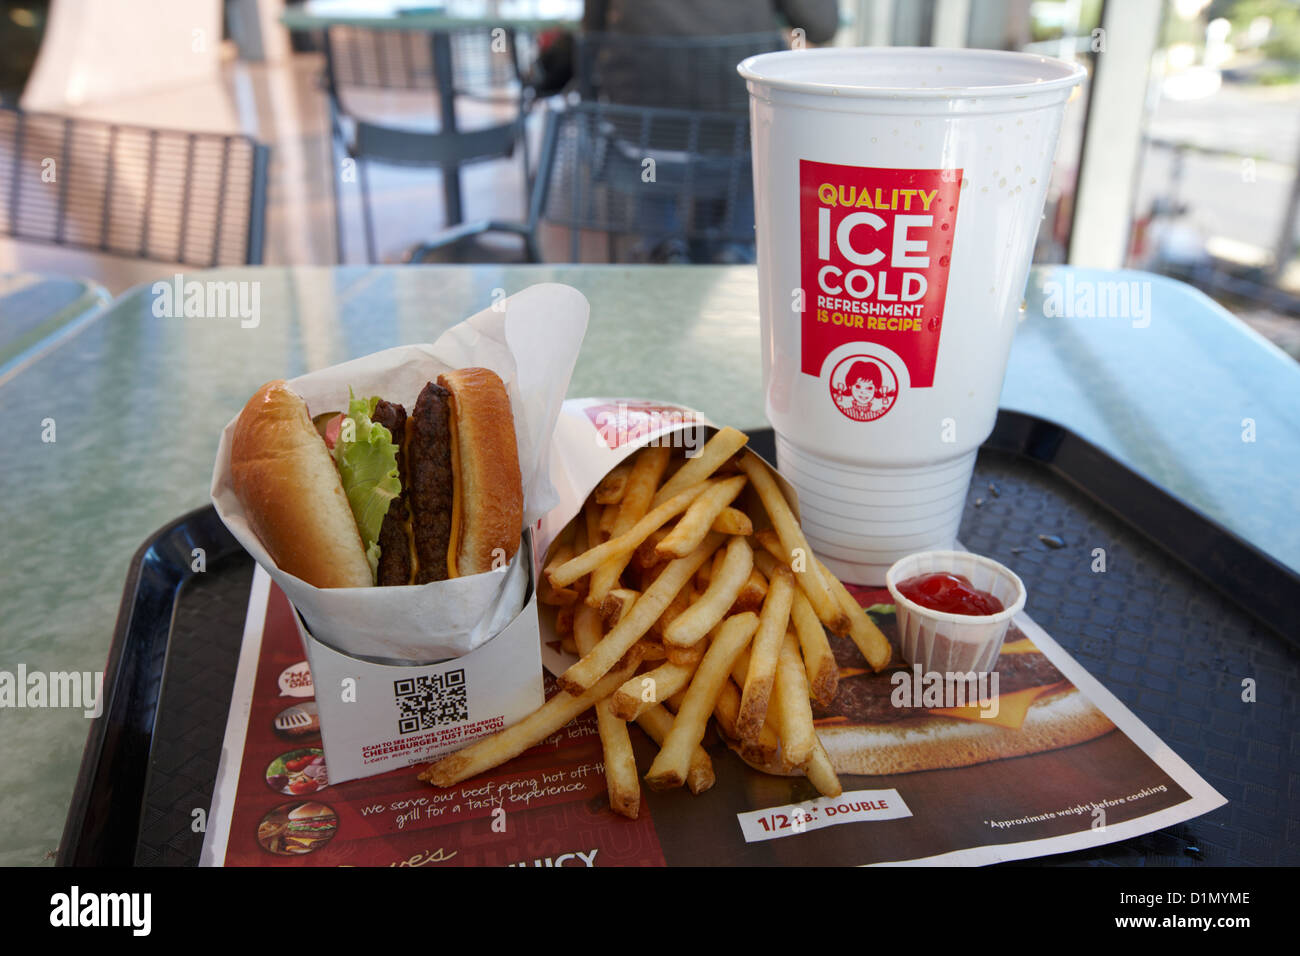 large wendys burger meal with large drink and fries Las Vegas Nevada USA - Stock Image